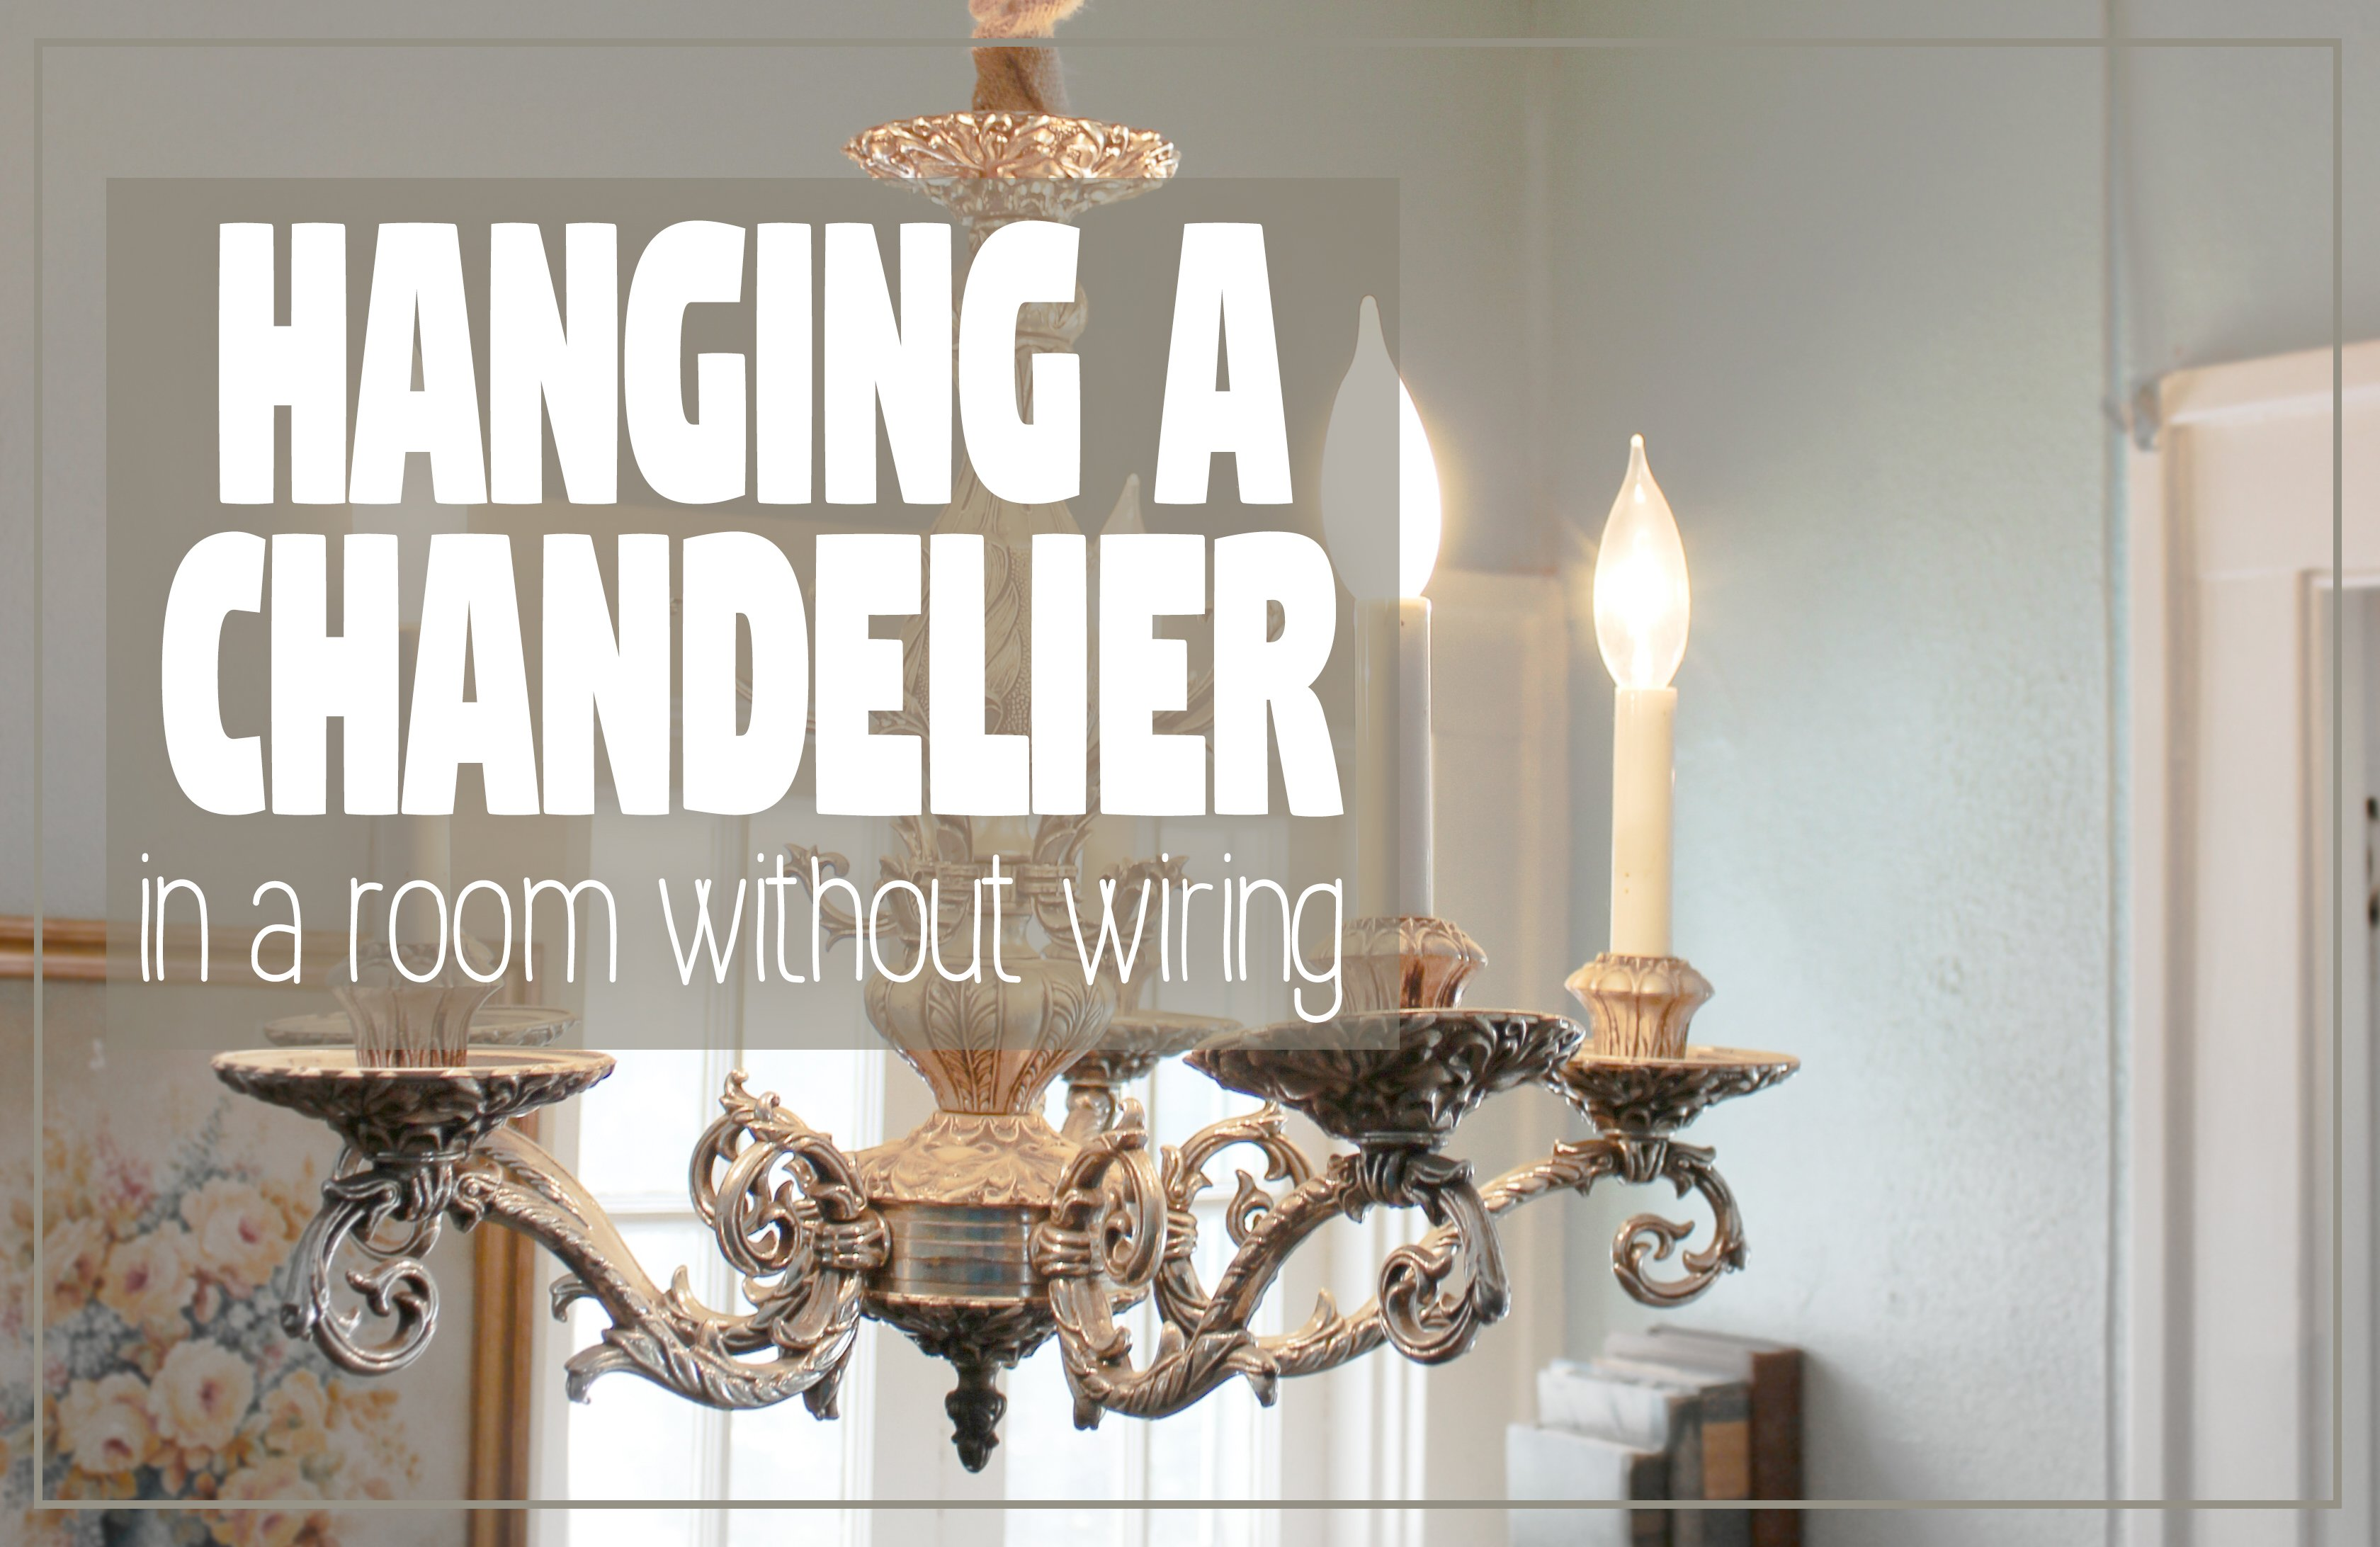 How to hang a chandelier in a room without wiring for an overhead how to hang a chandelier in a room without wiring for an overhead light hawk hill arubaitofo Image collections